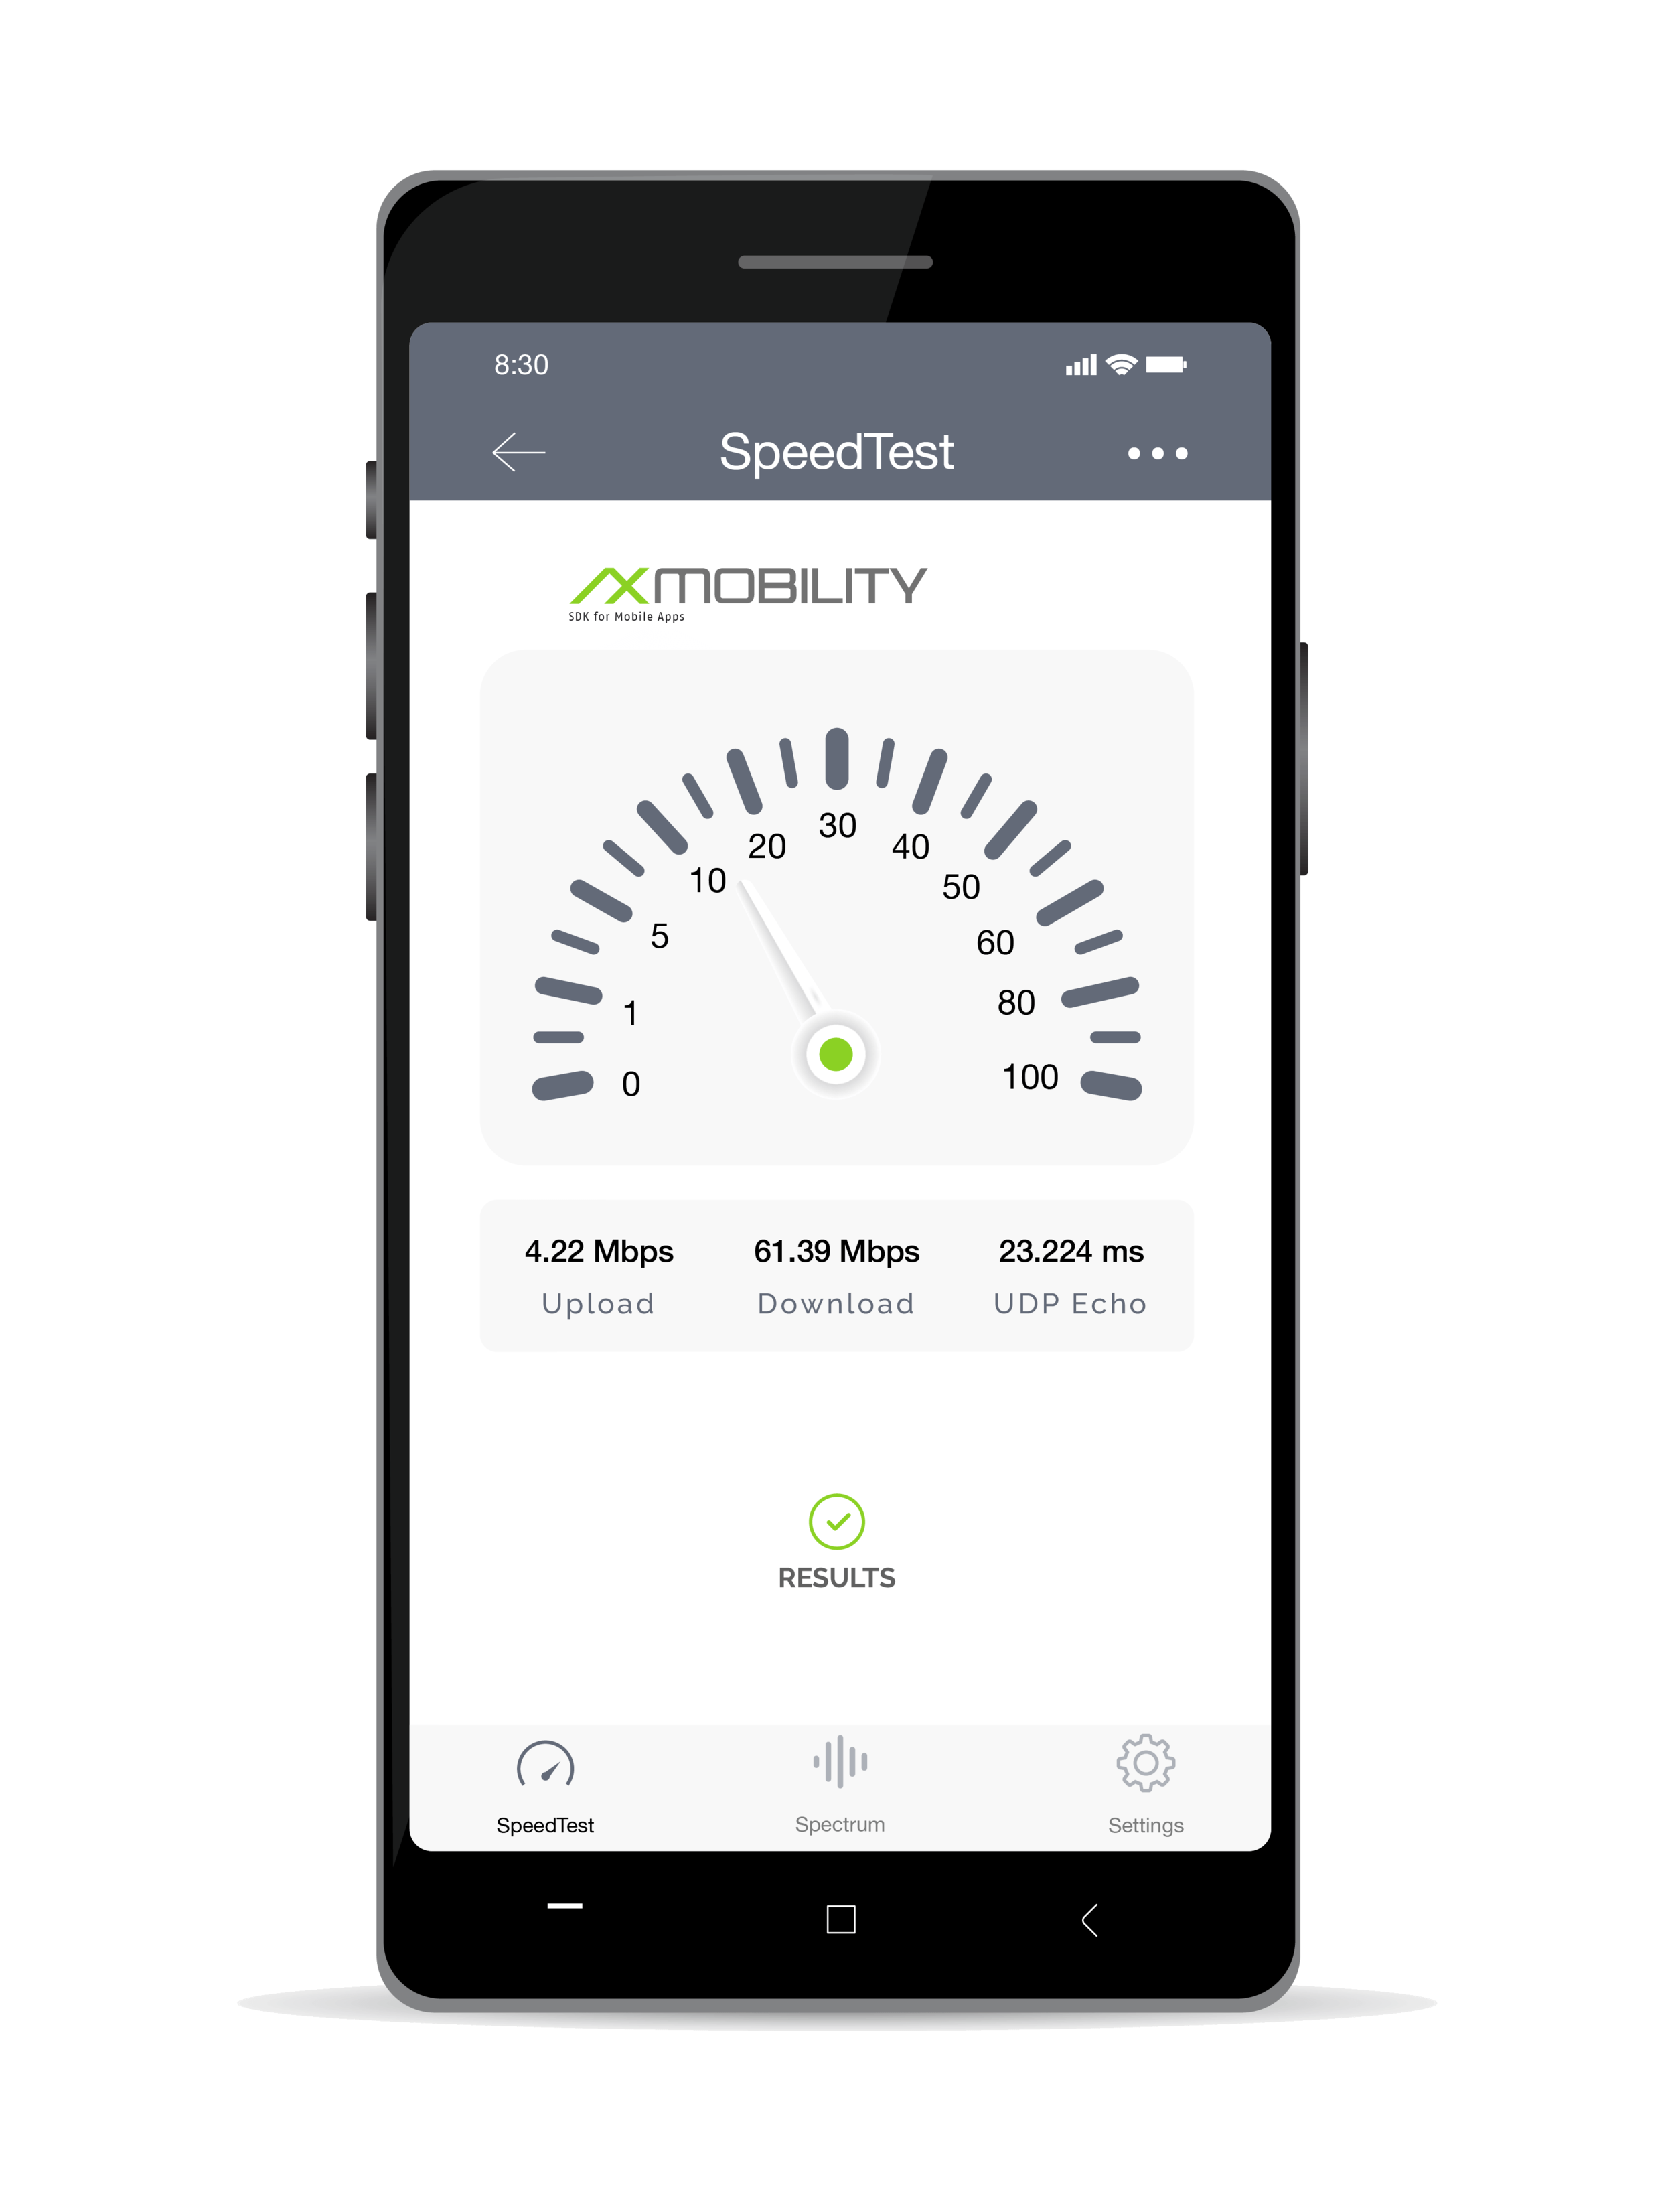 AXMobility_android-02.png